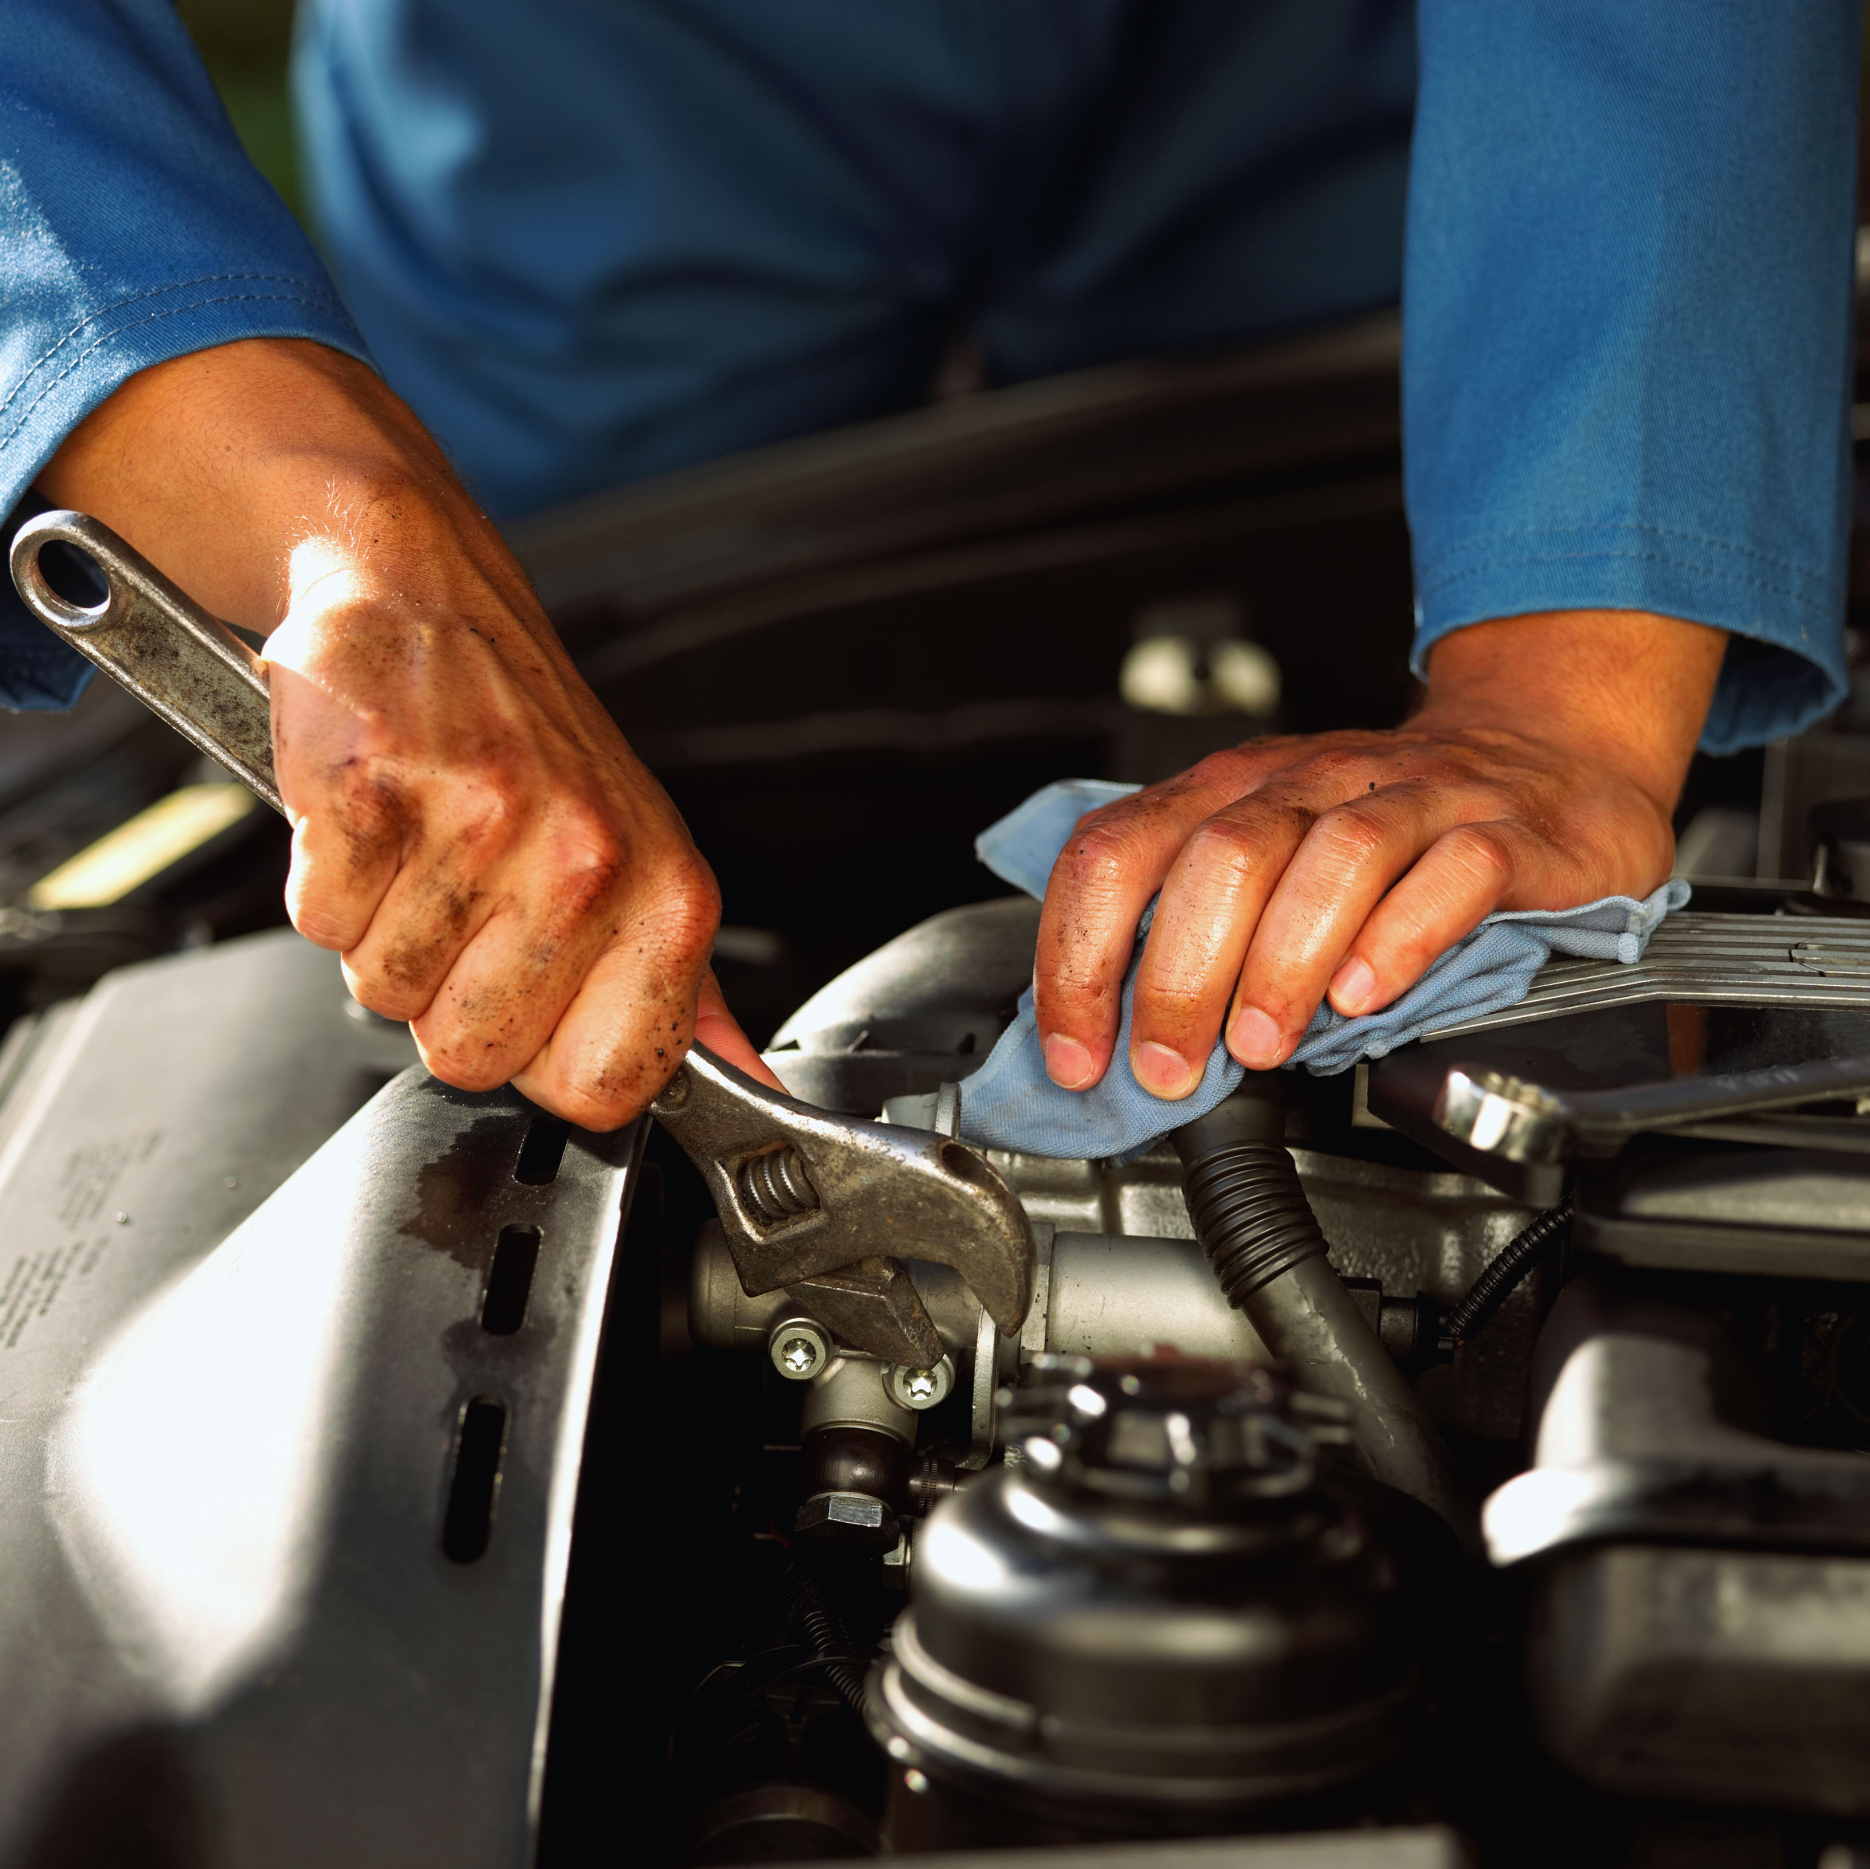 Lebanon Friendly Auto Service works with domestic and foreign vehicles